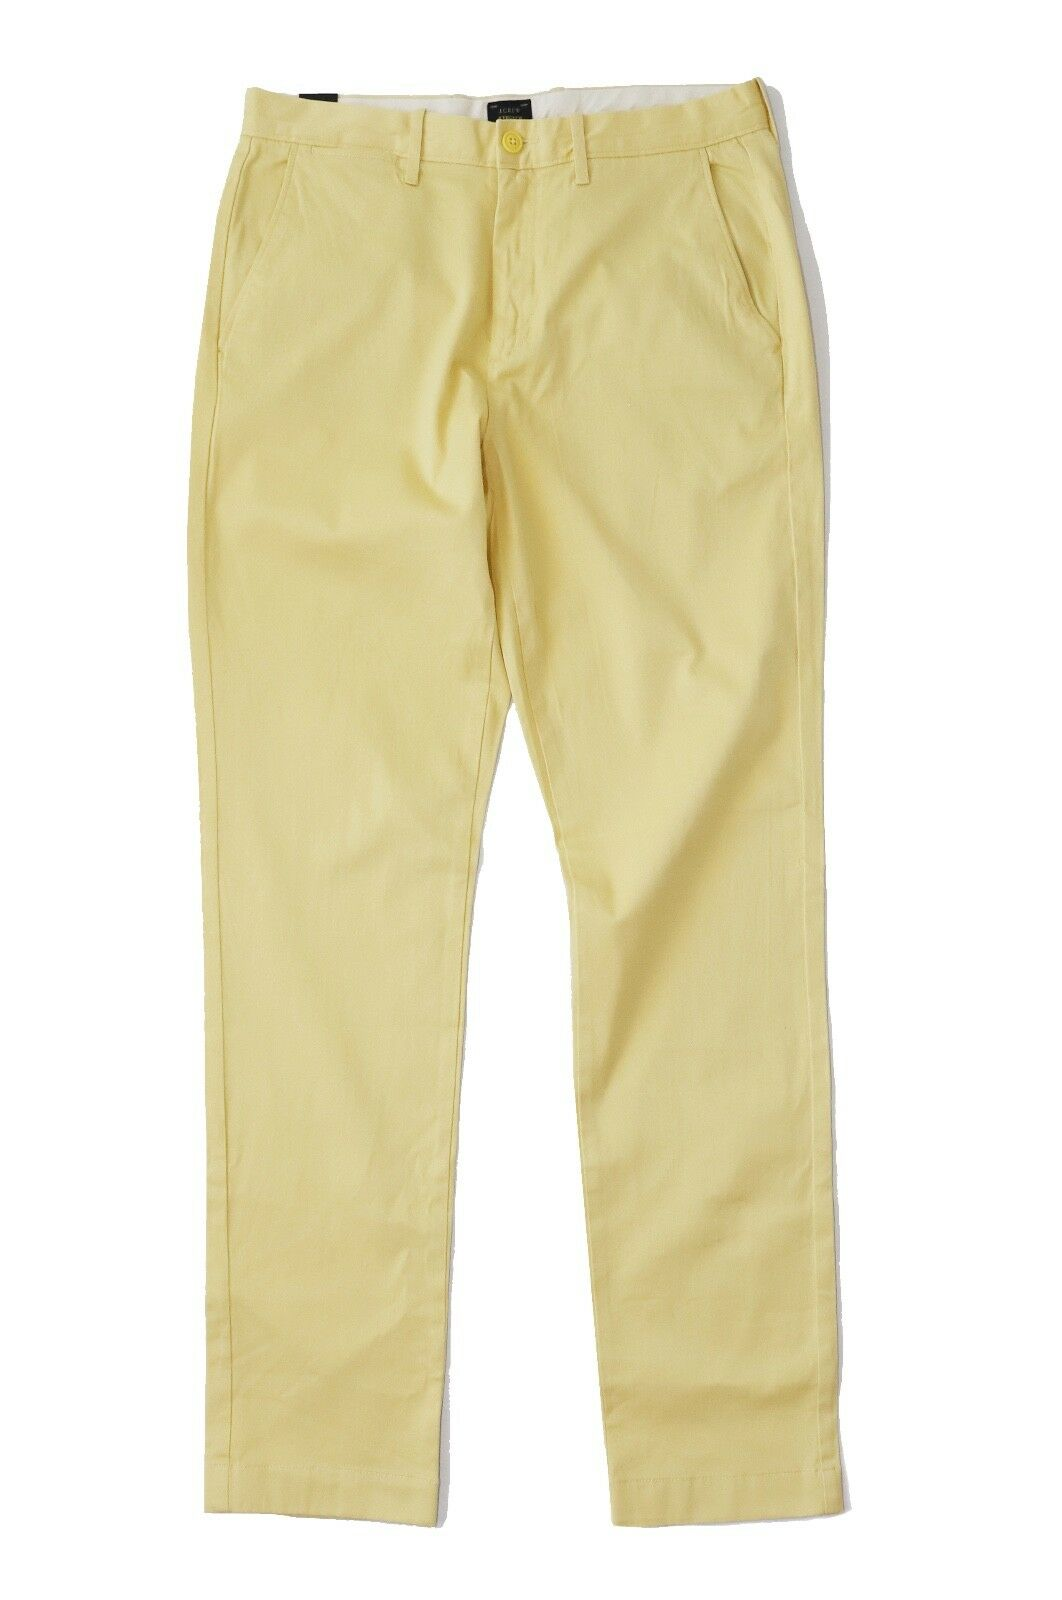 J.Crew Men's 34 32 - NWT - Sun-Faded Yellow 770 Fit Cotton Stretch Pants